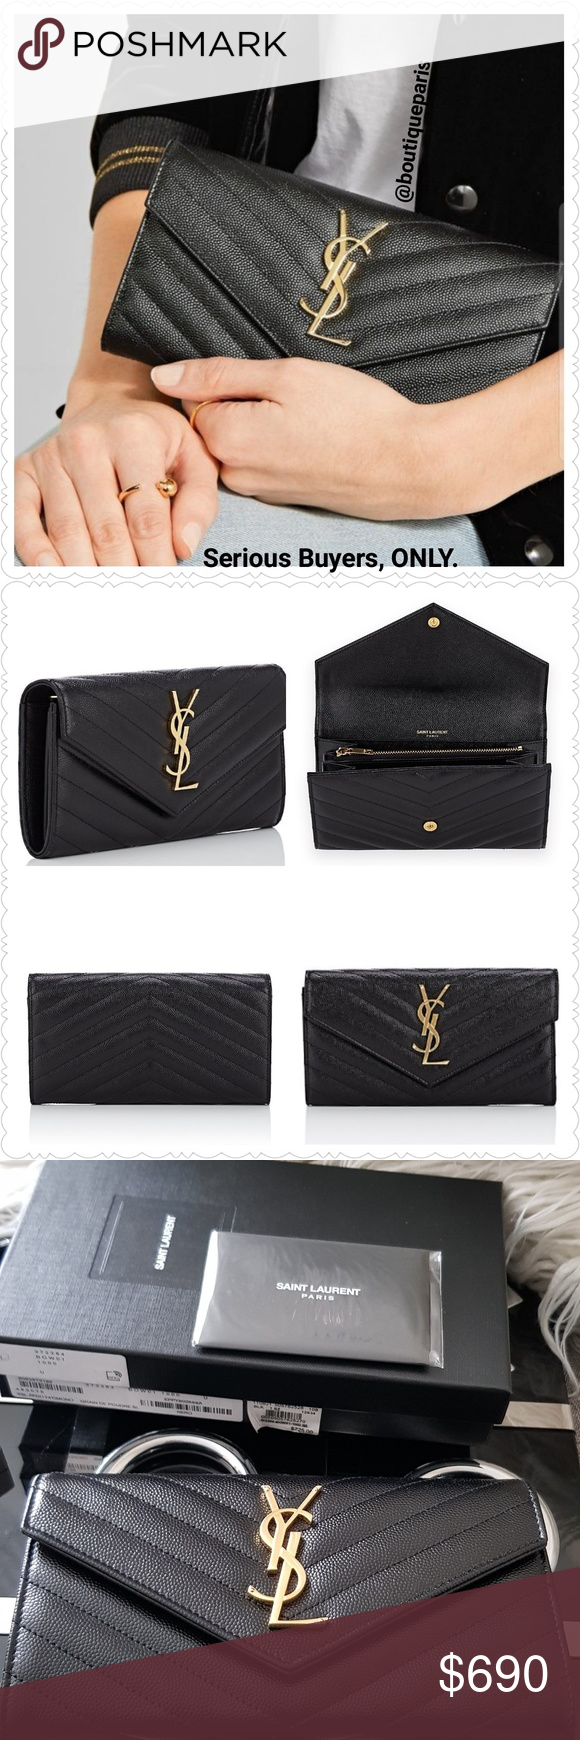 8dcdd3e125 Saint Laurent Monogram LARGE Leather Flap Wallet♥️ NWT in 2019 ...